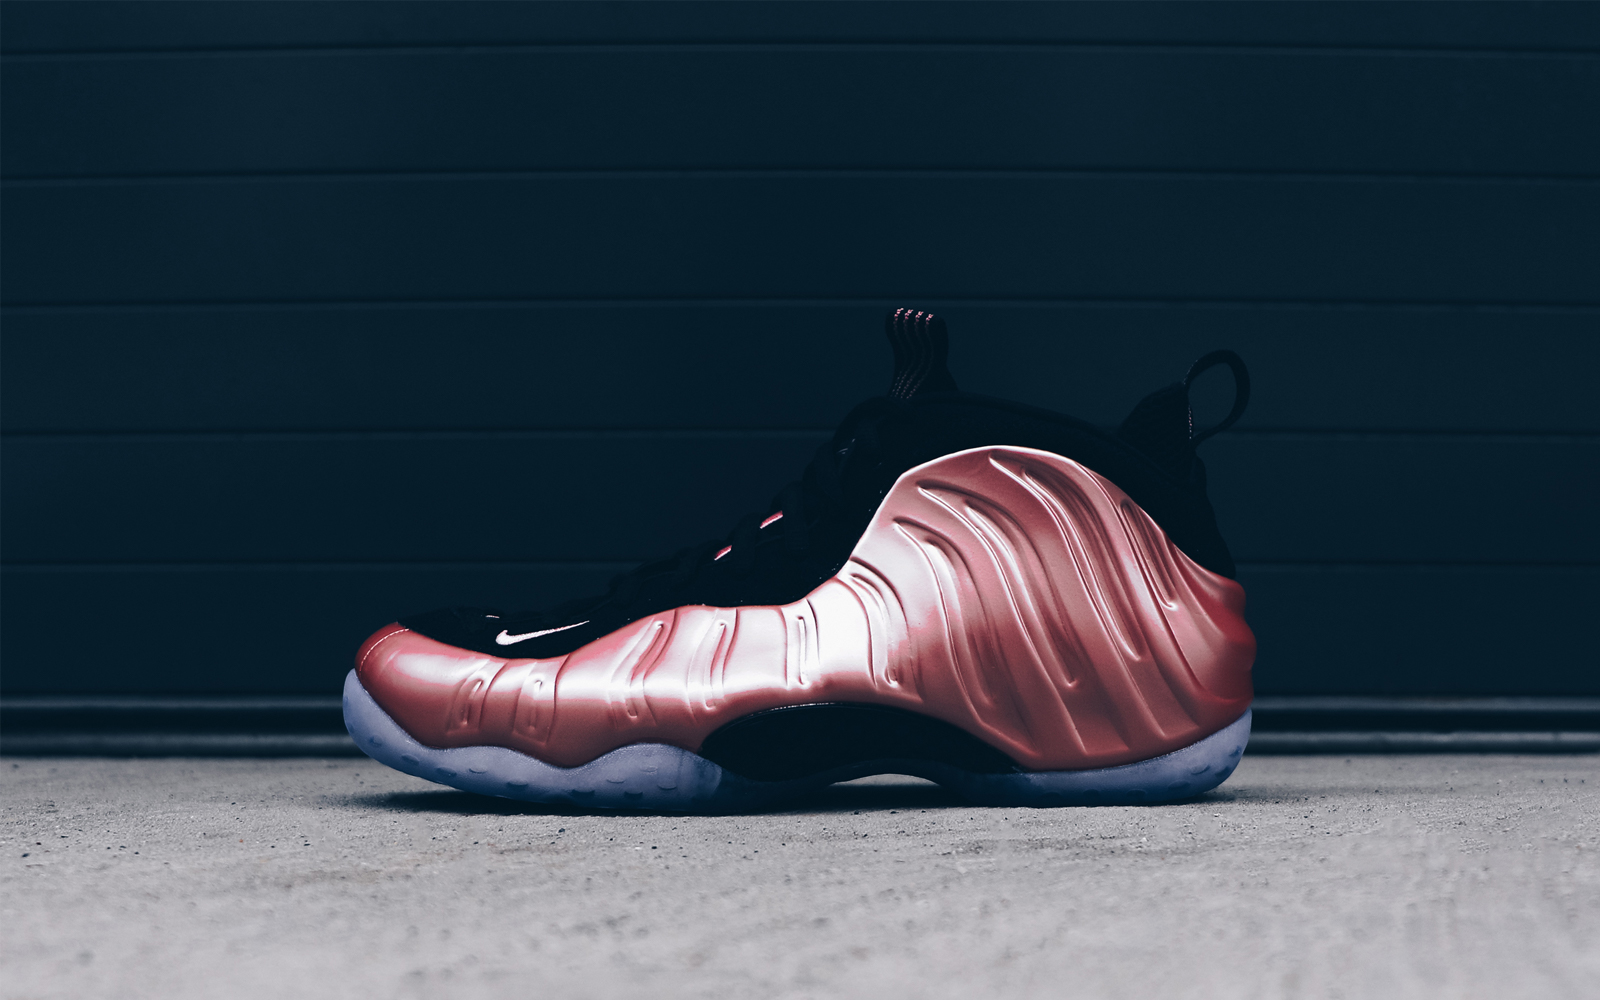 Nike Air Foamposite One Mambacurial Customs by Sole Swap